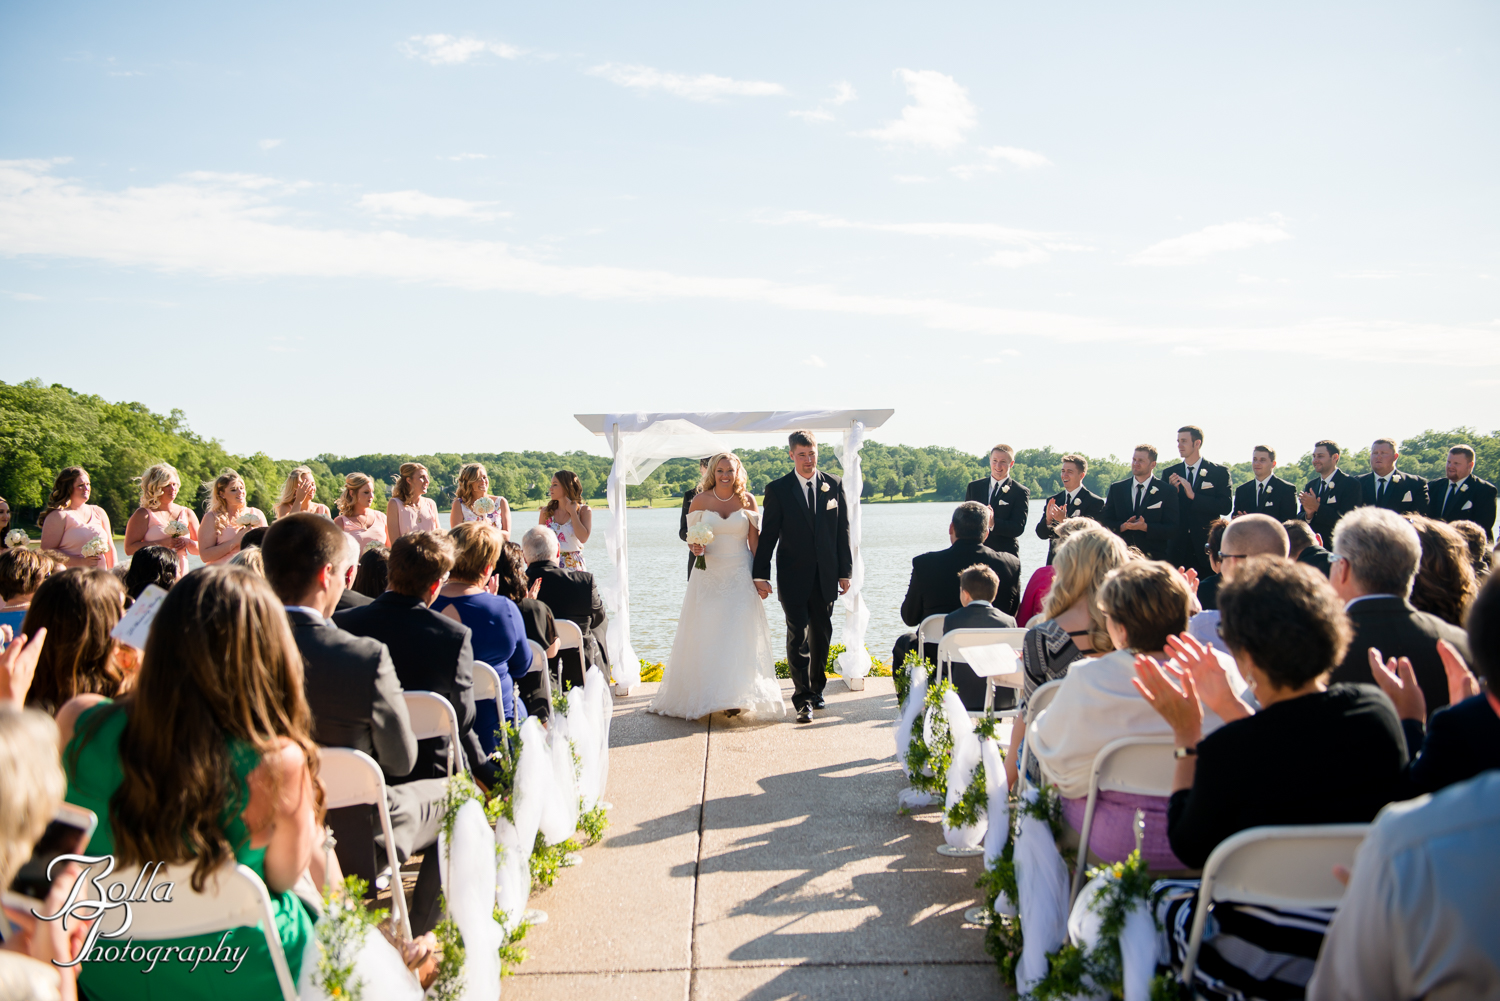 Bolla_Photography_St_Louis_wedding_photographer-0335.jpg